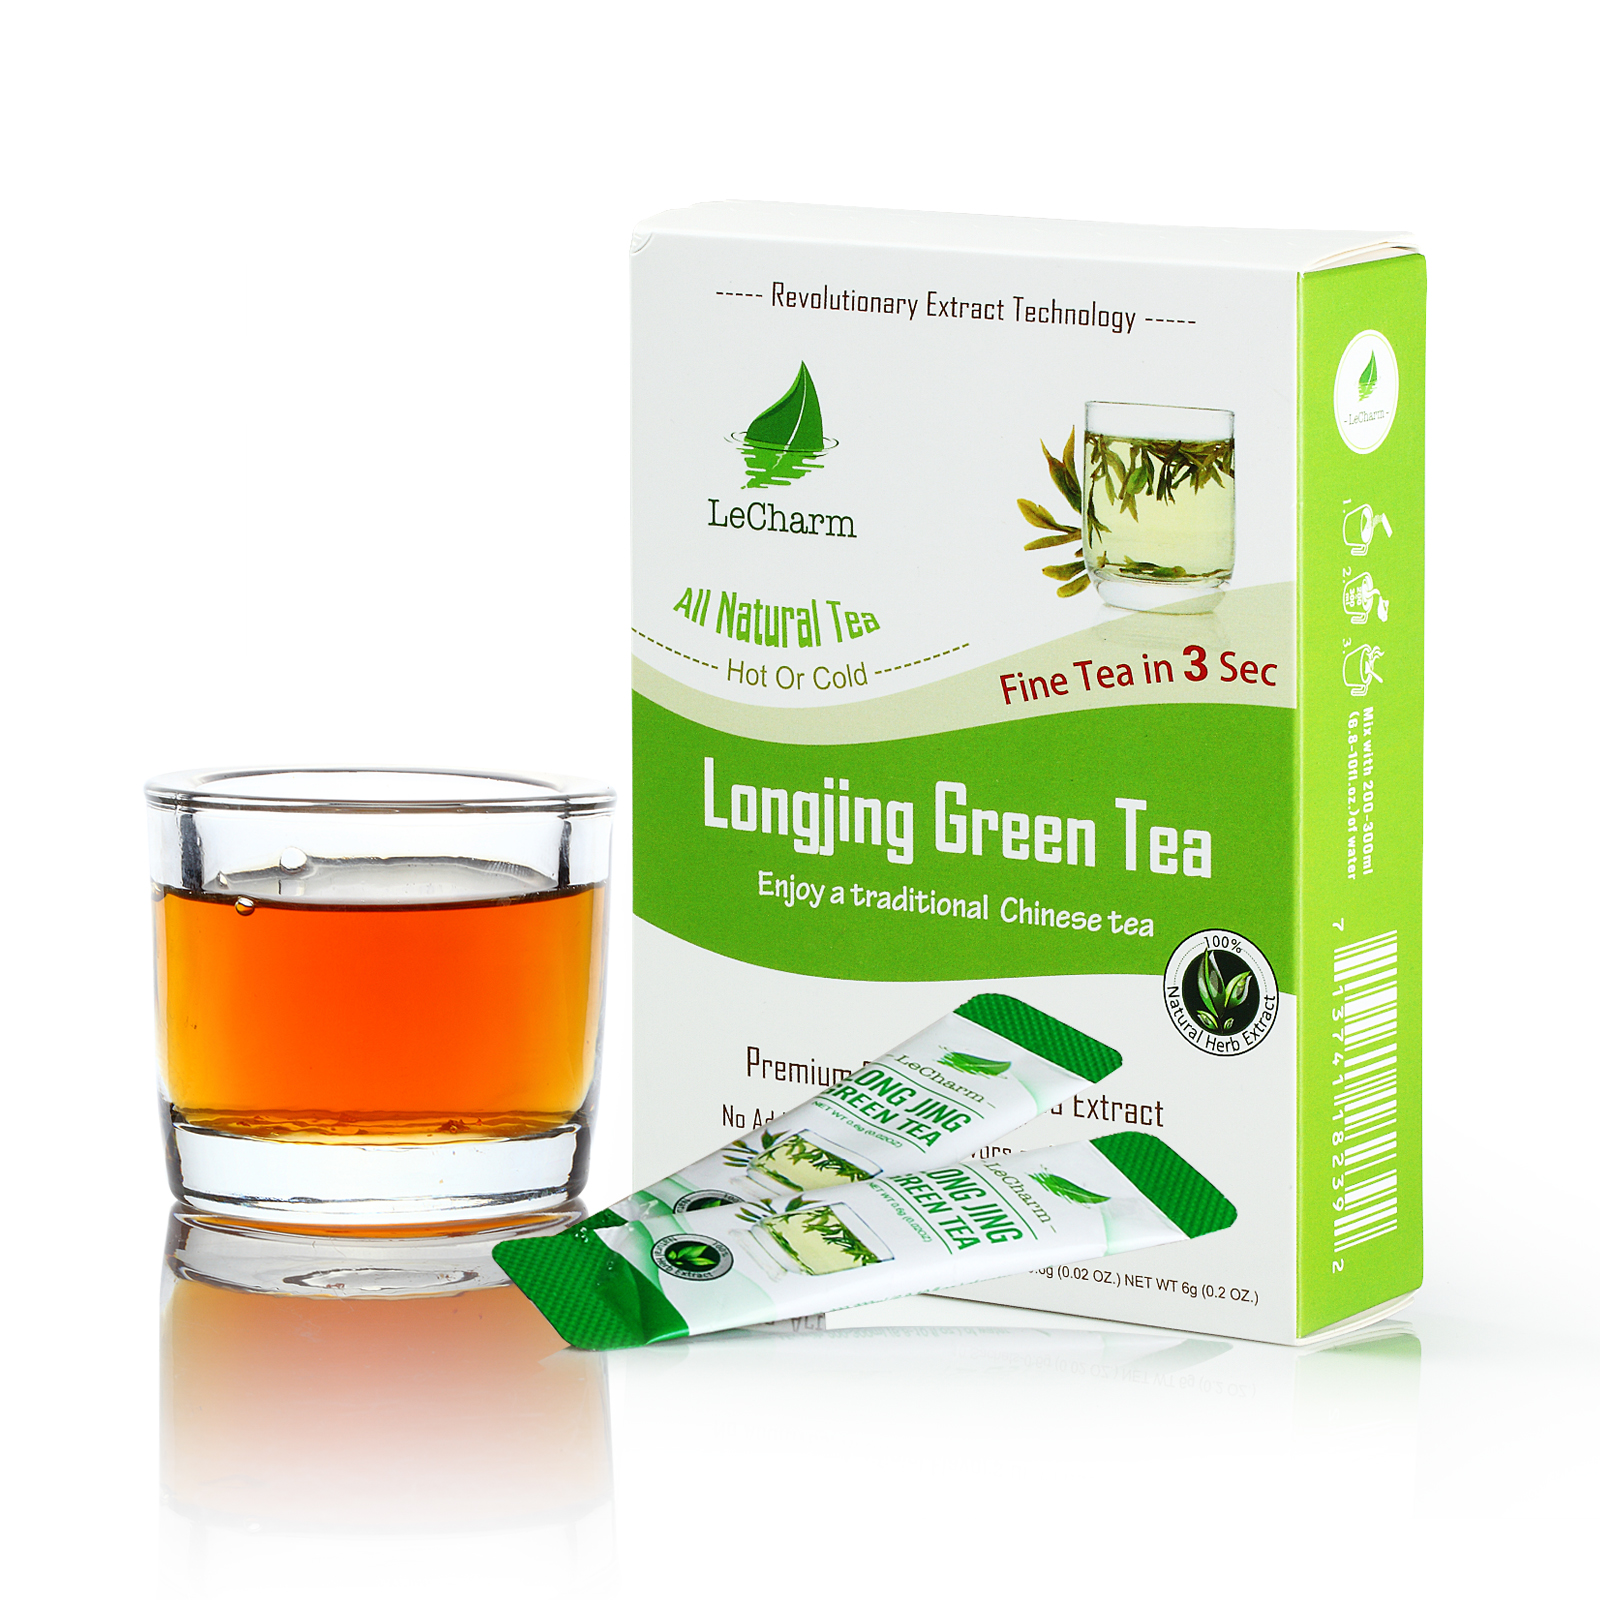 Whole sales High quality China famous green tea private label ok FSSC22000 certified factory - 4uTea | 4uTea.com